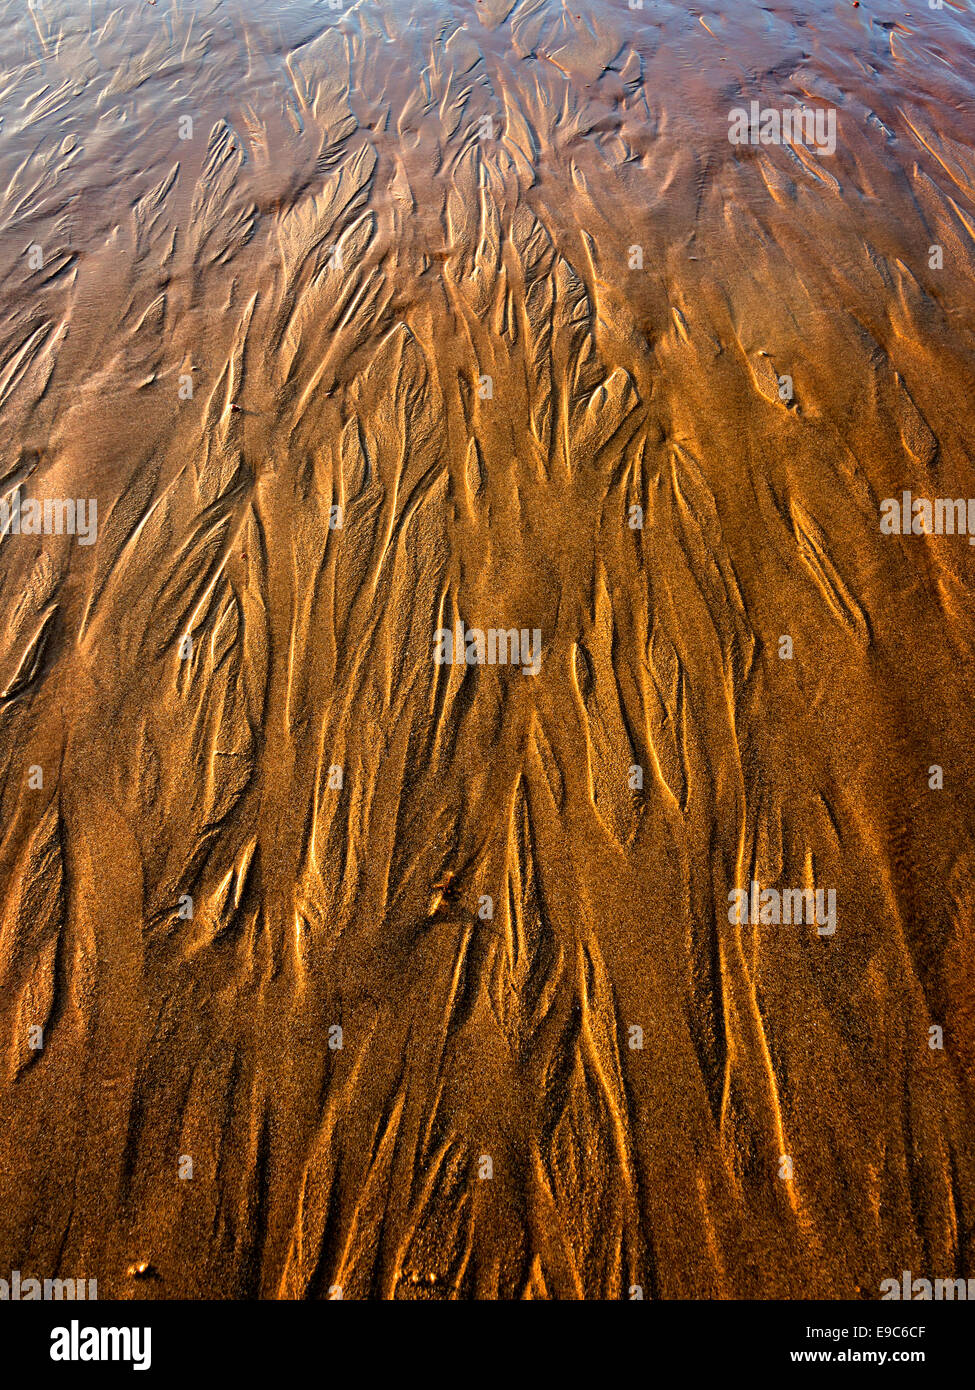 abstract photo with sand textures - Stock Image